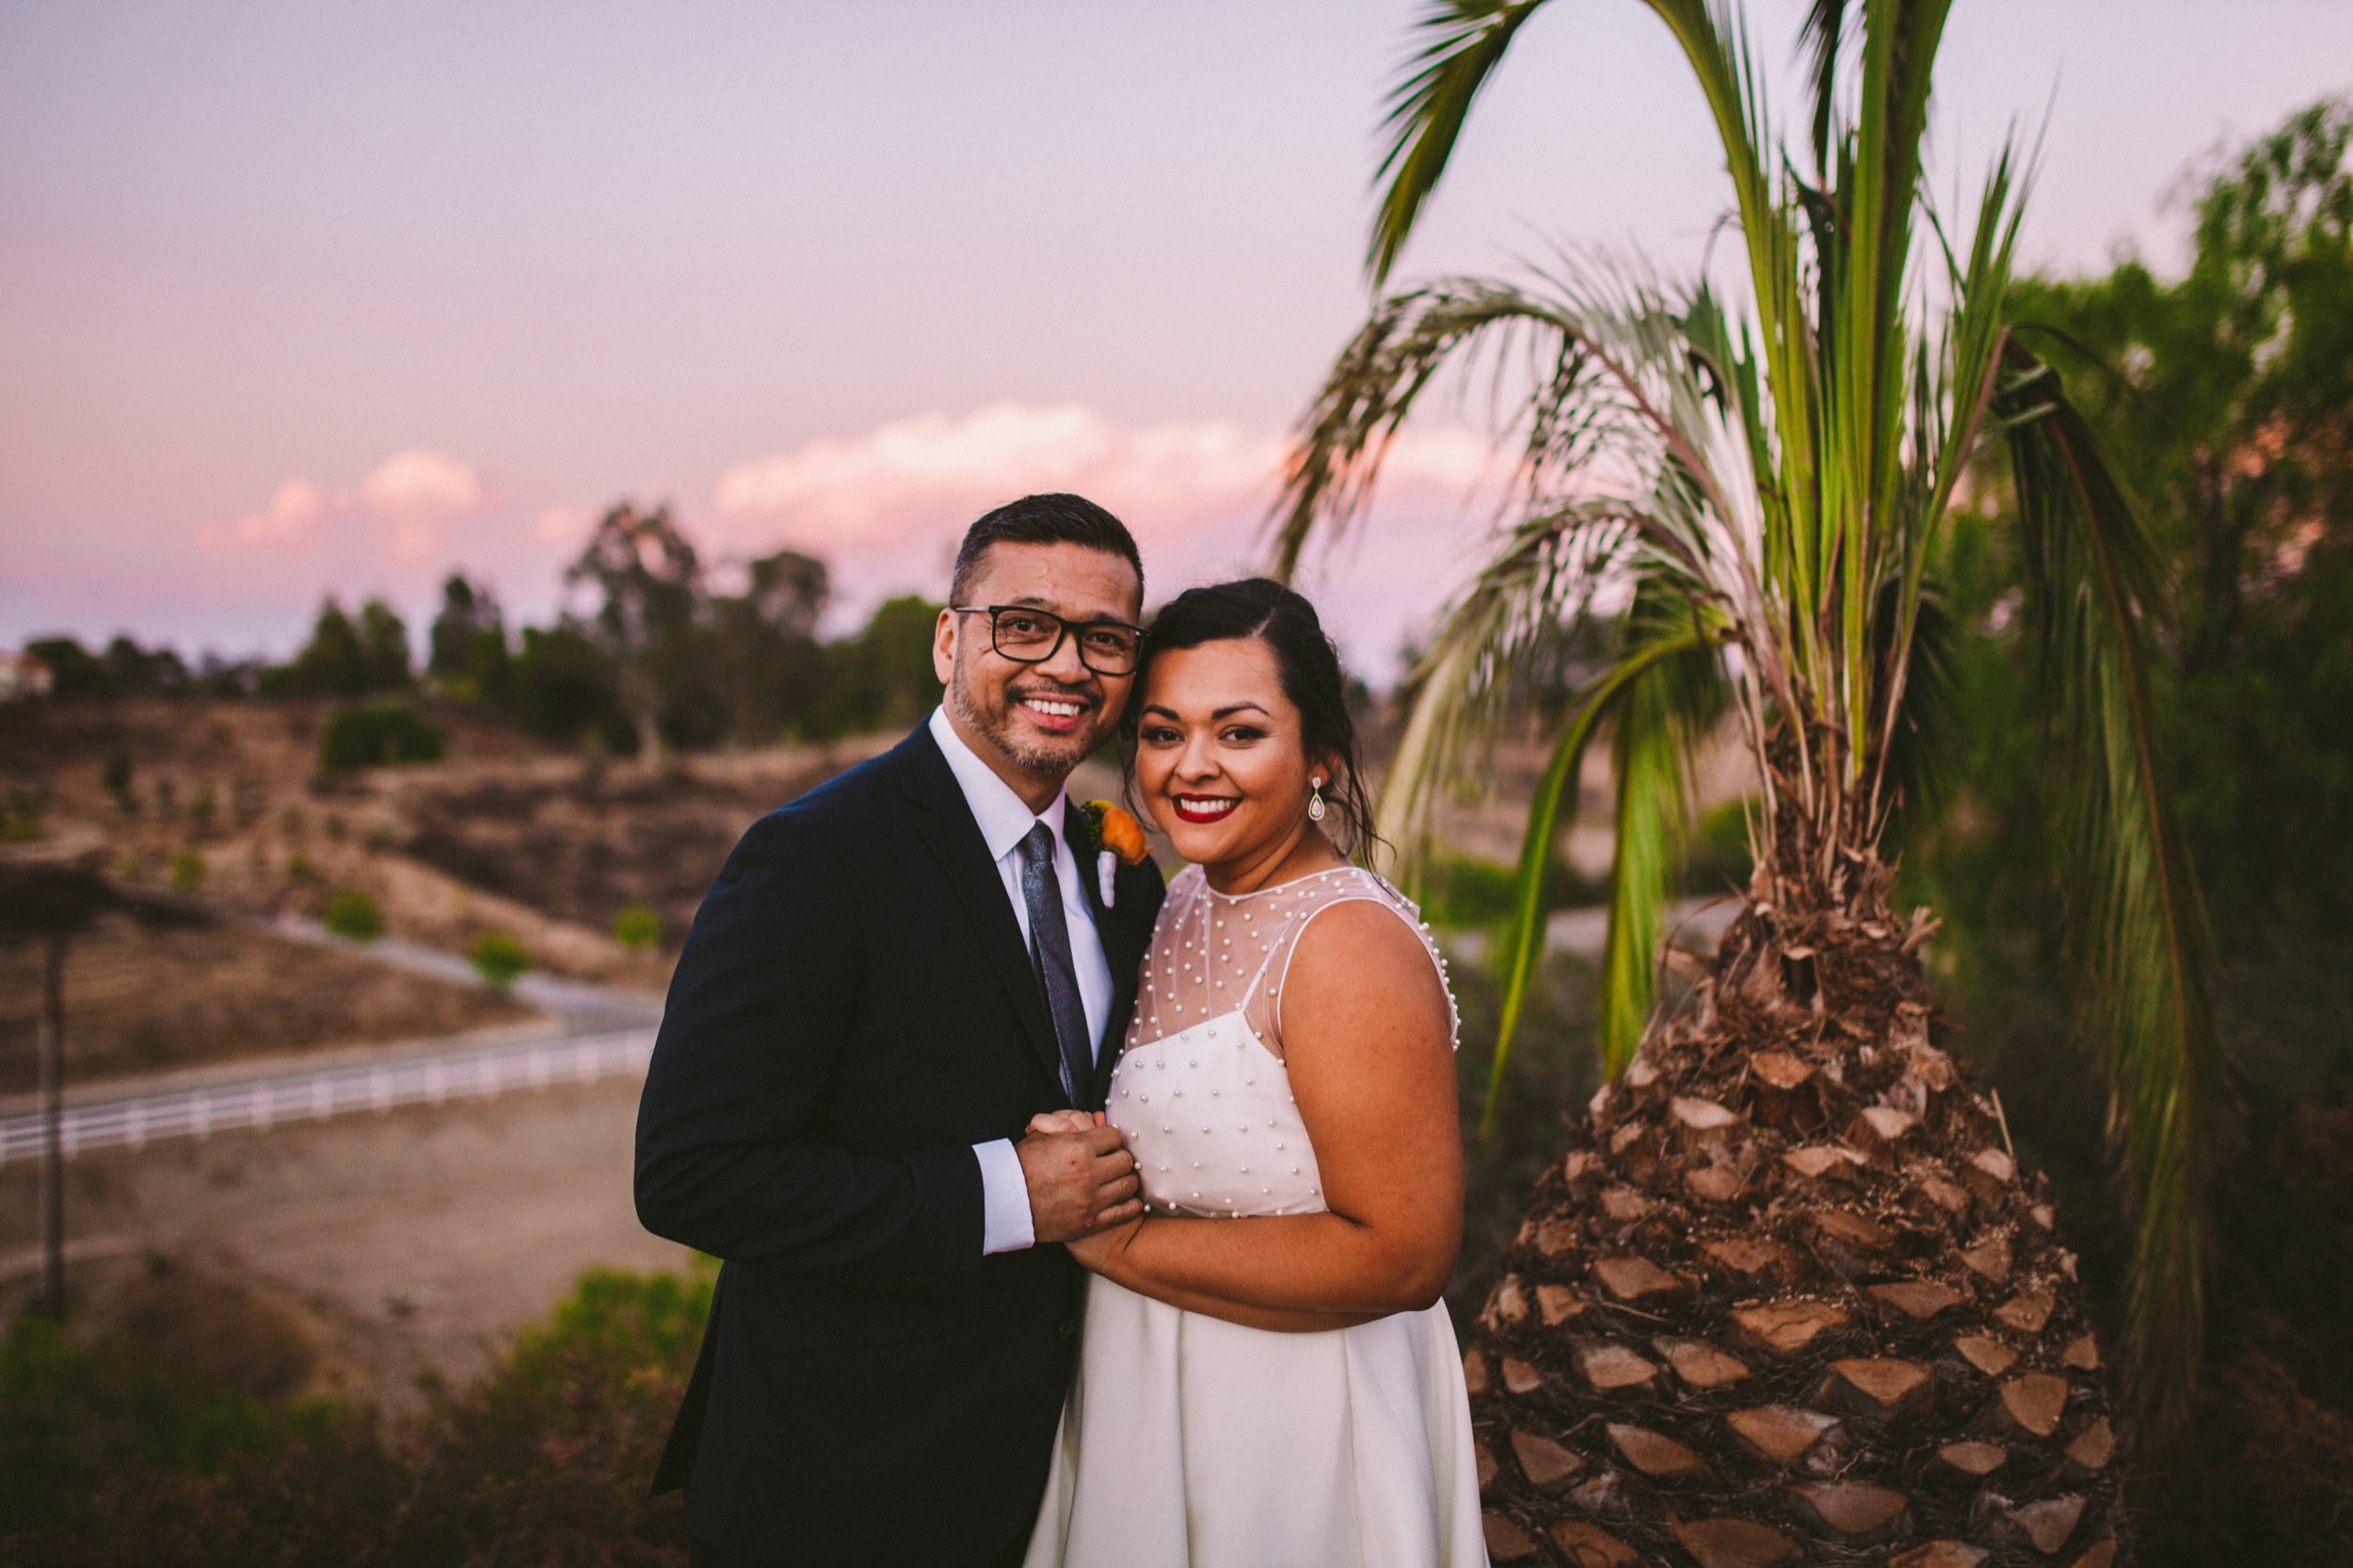 Intimate & colorful Temecula Documentary Wedding Photography-90.jpg